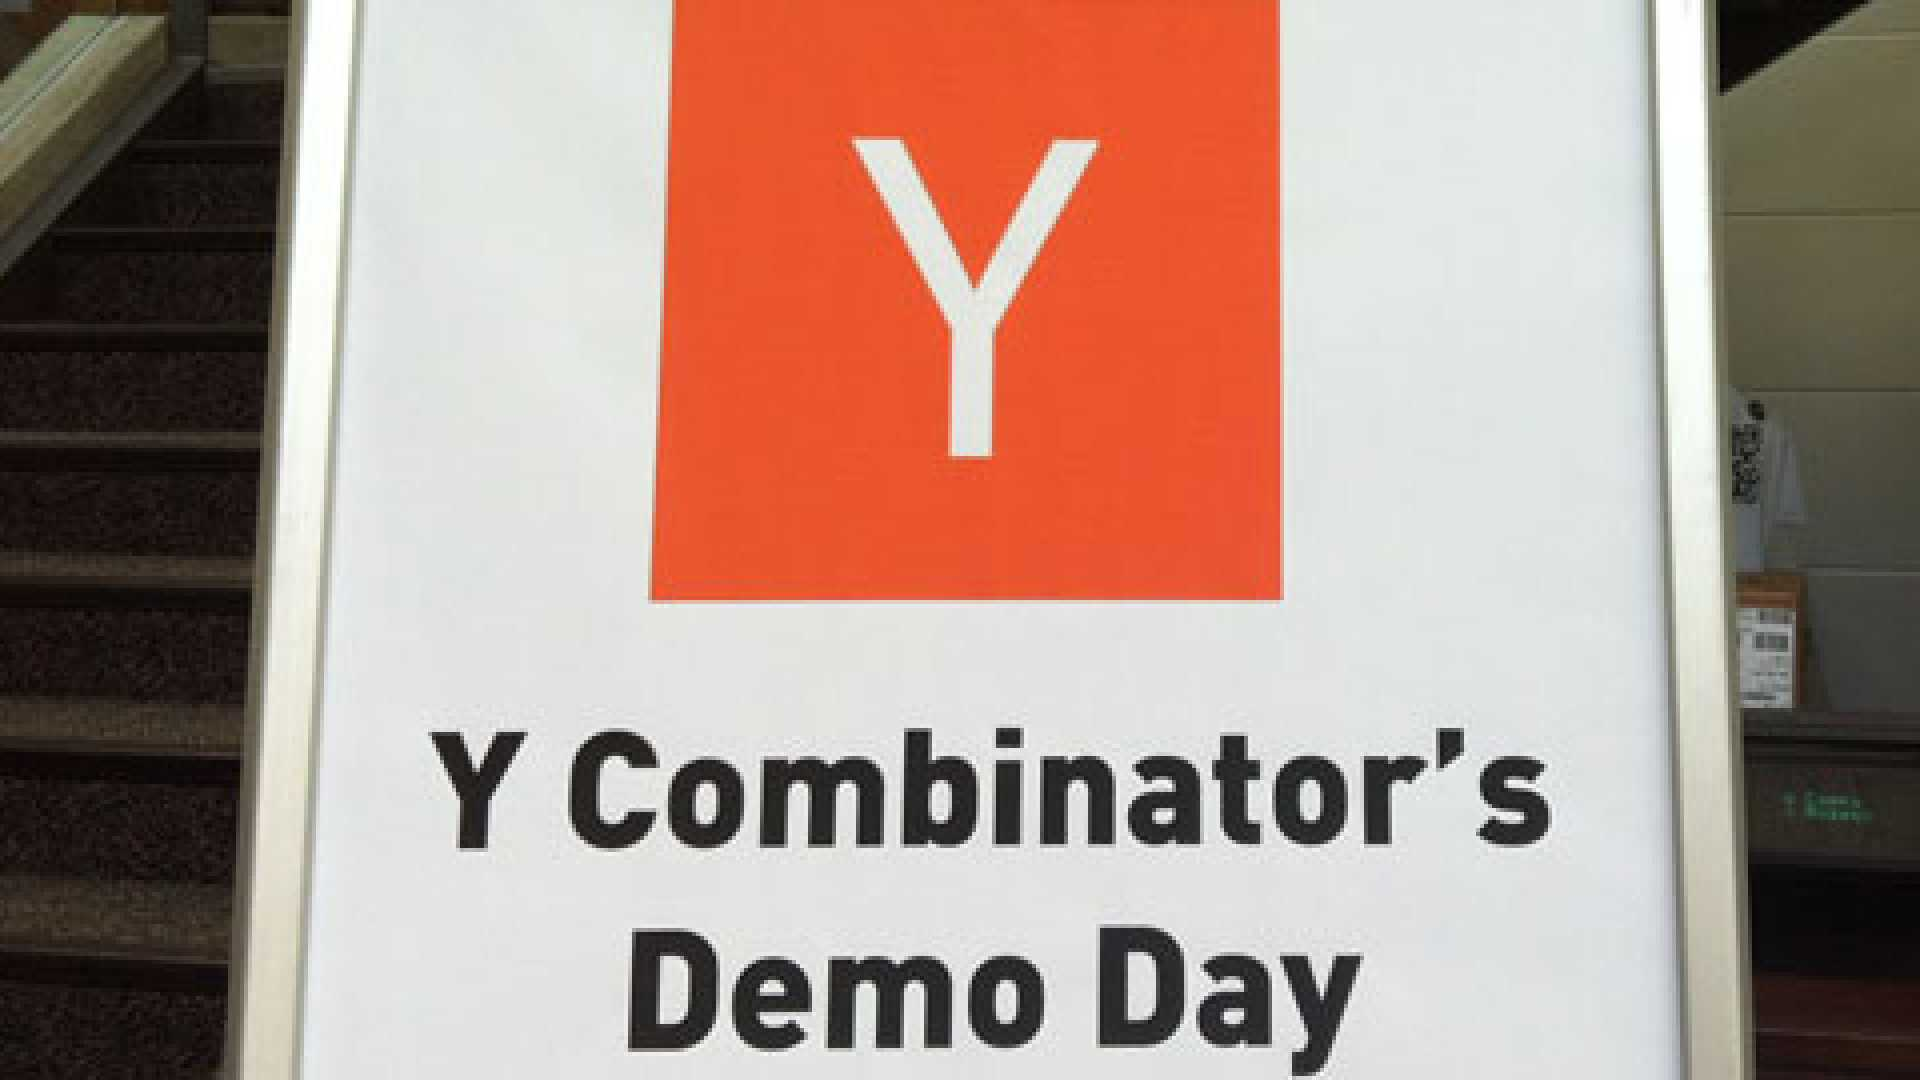 5 Start-ups to Watch From Y Combinator's Demo Day